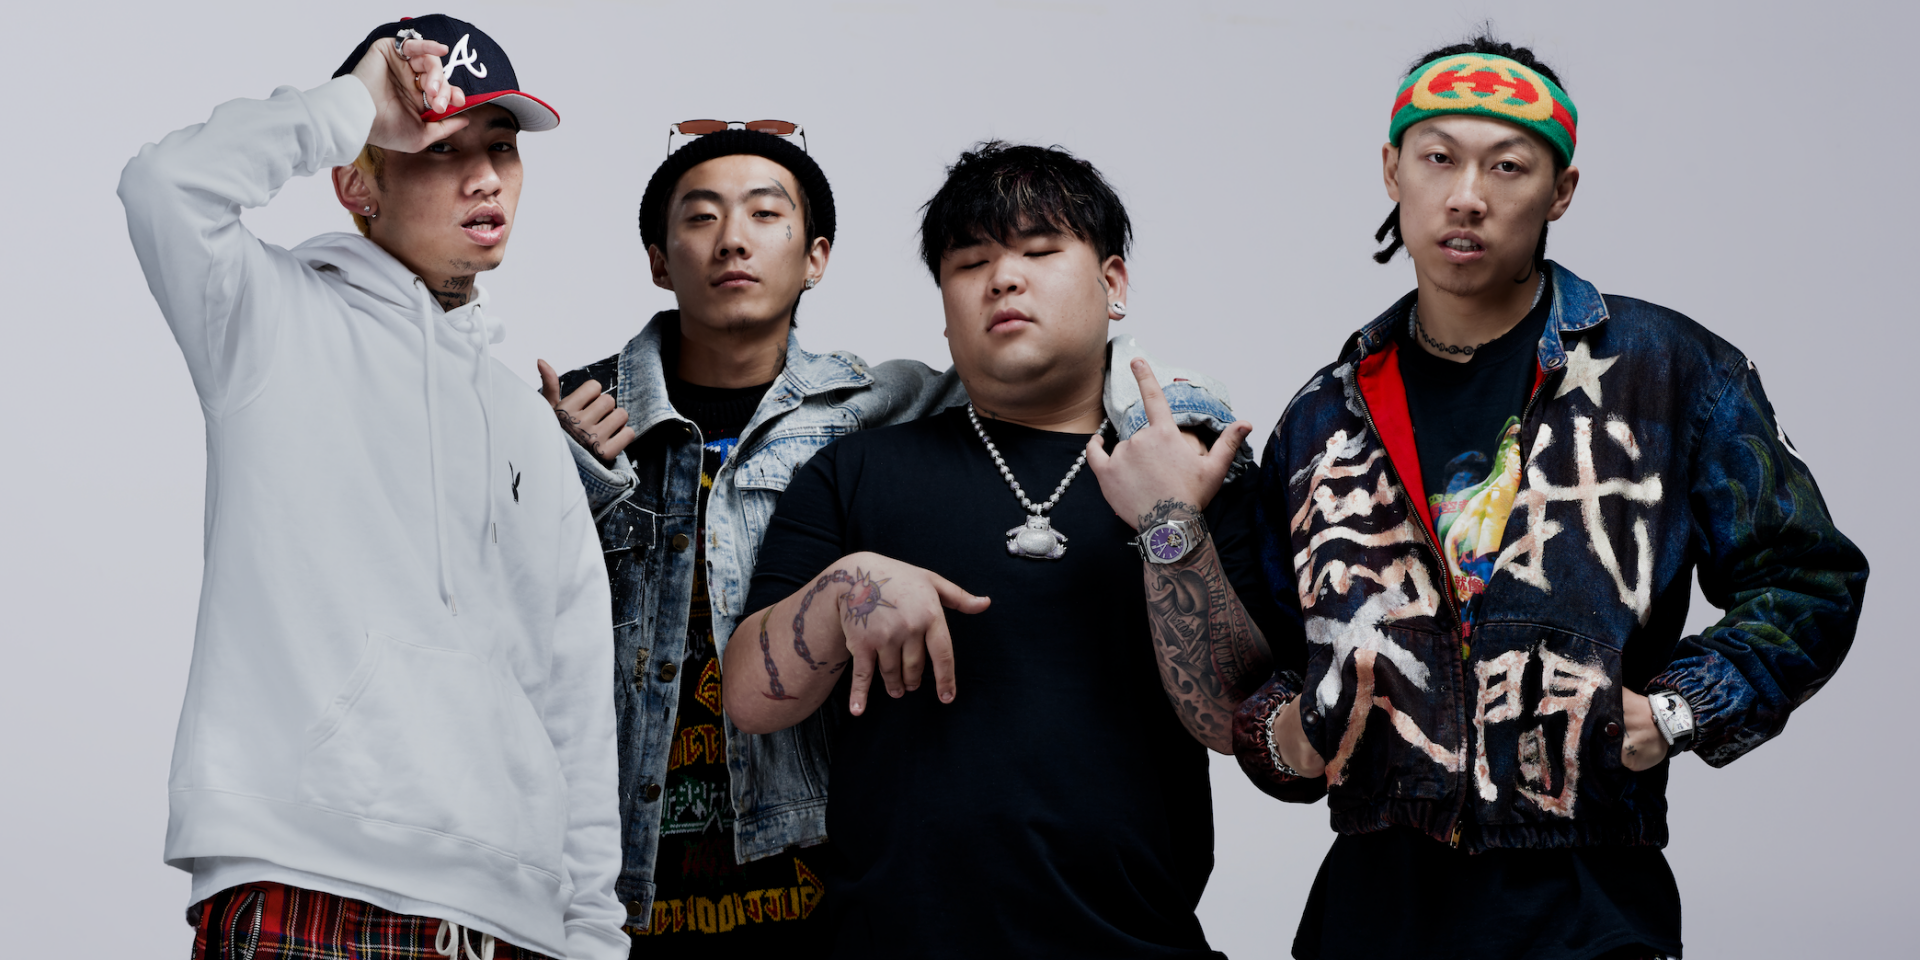 """Language barriers will always exist but music speaks louder than words"": An interview with Higher Brothers"